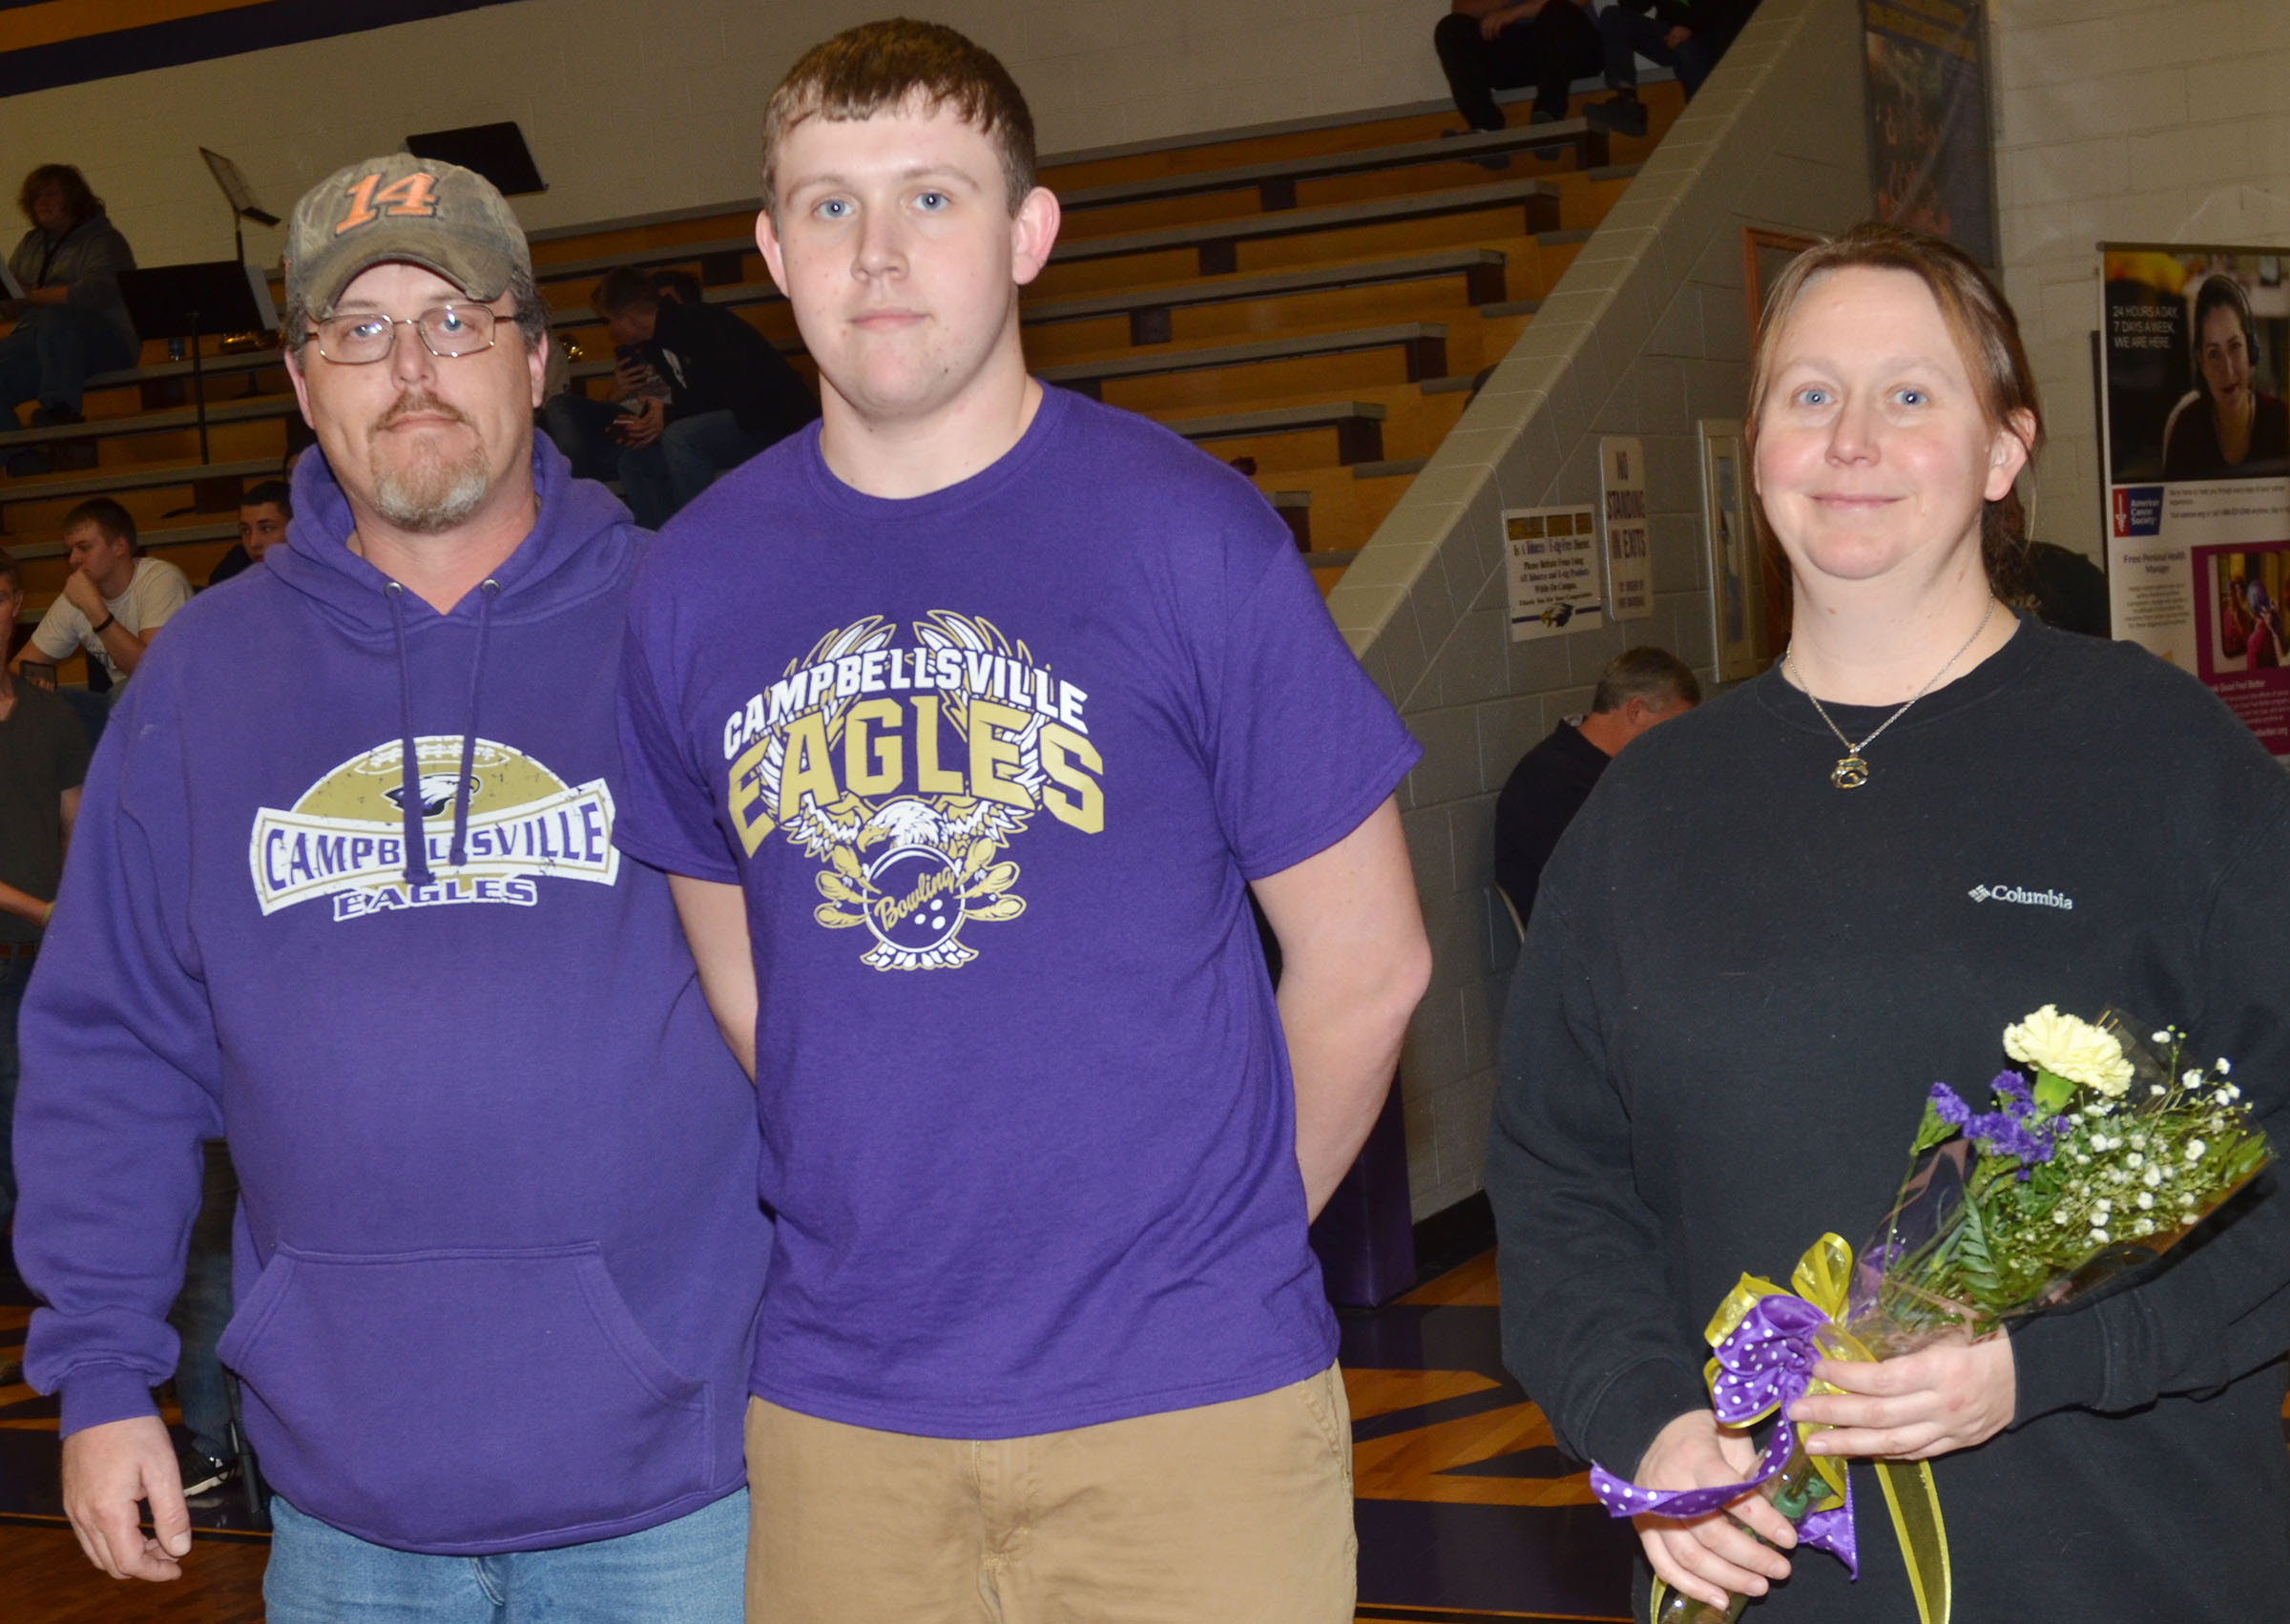 CHS senior bowling team member Jared Brewster is honored. He is pictured with his parents, Suzanne Davis and David Brewster.